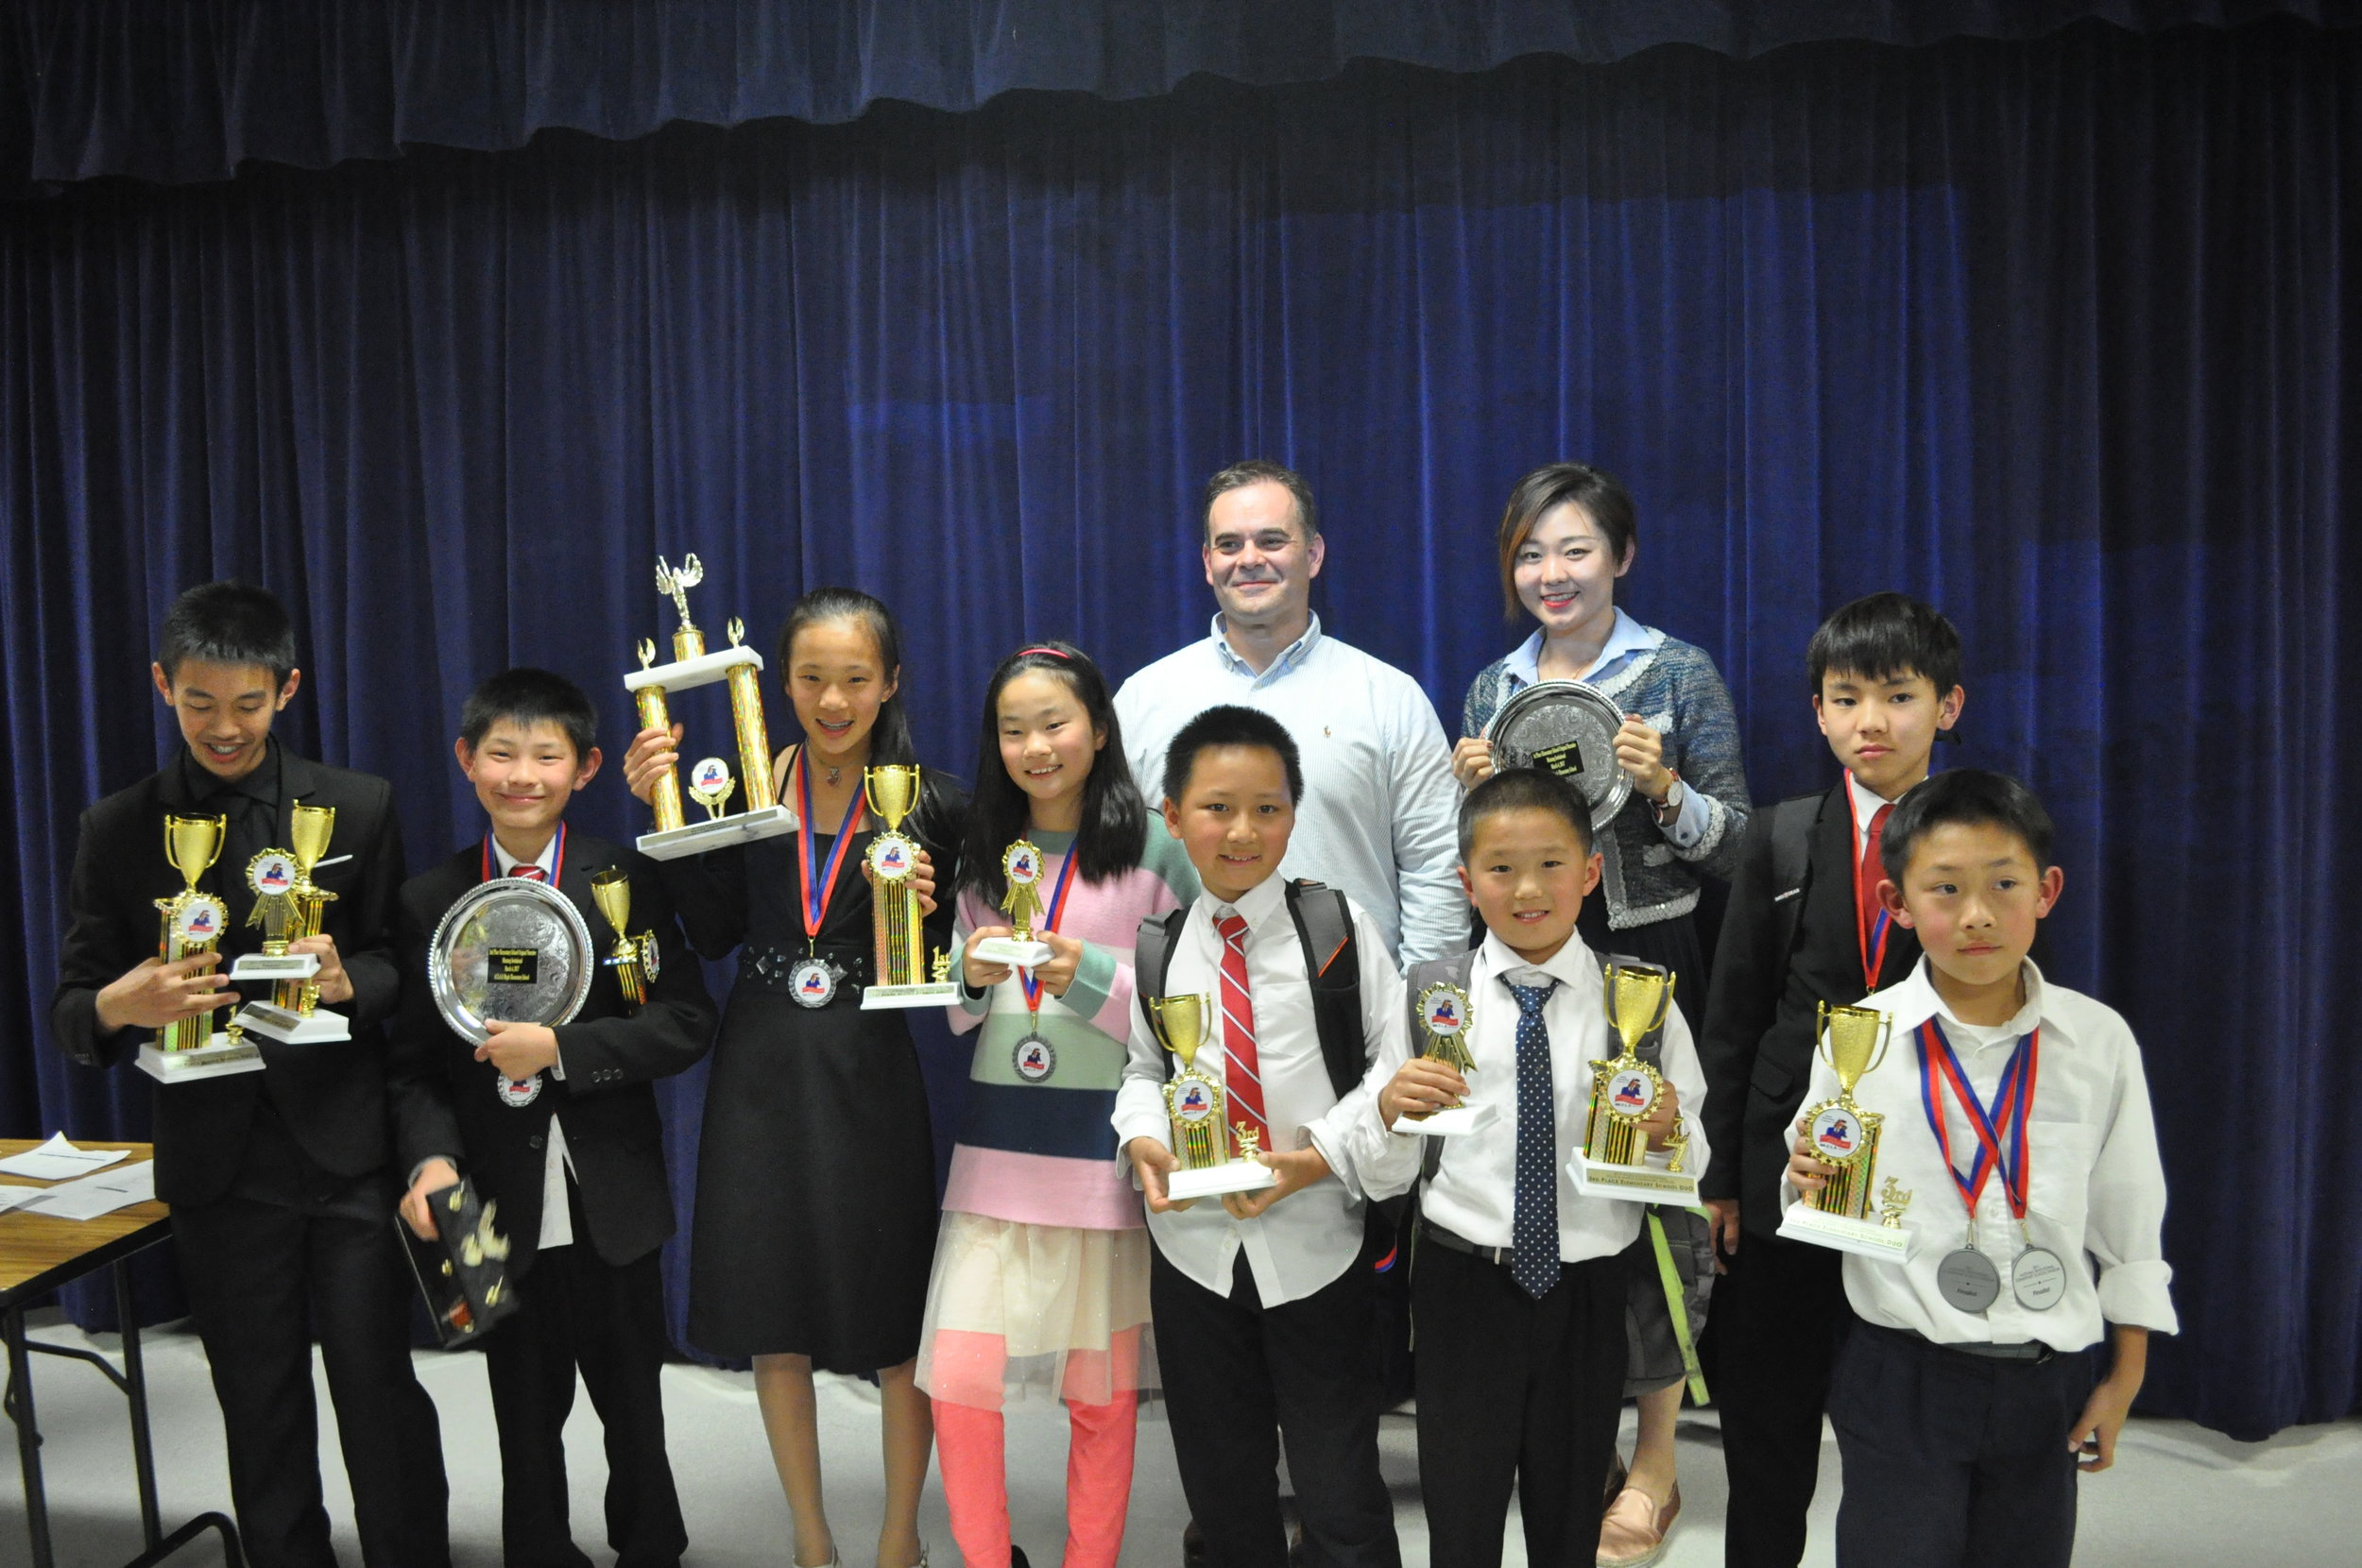 Congratulations to all ModernBrain student. Our students took 1st place overall in middle school and 3rd overall in elementary. We had students win in every category of speech: limited preparation, platform, interpretation of literature (acting), and debate. So proud of all of you!